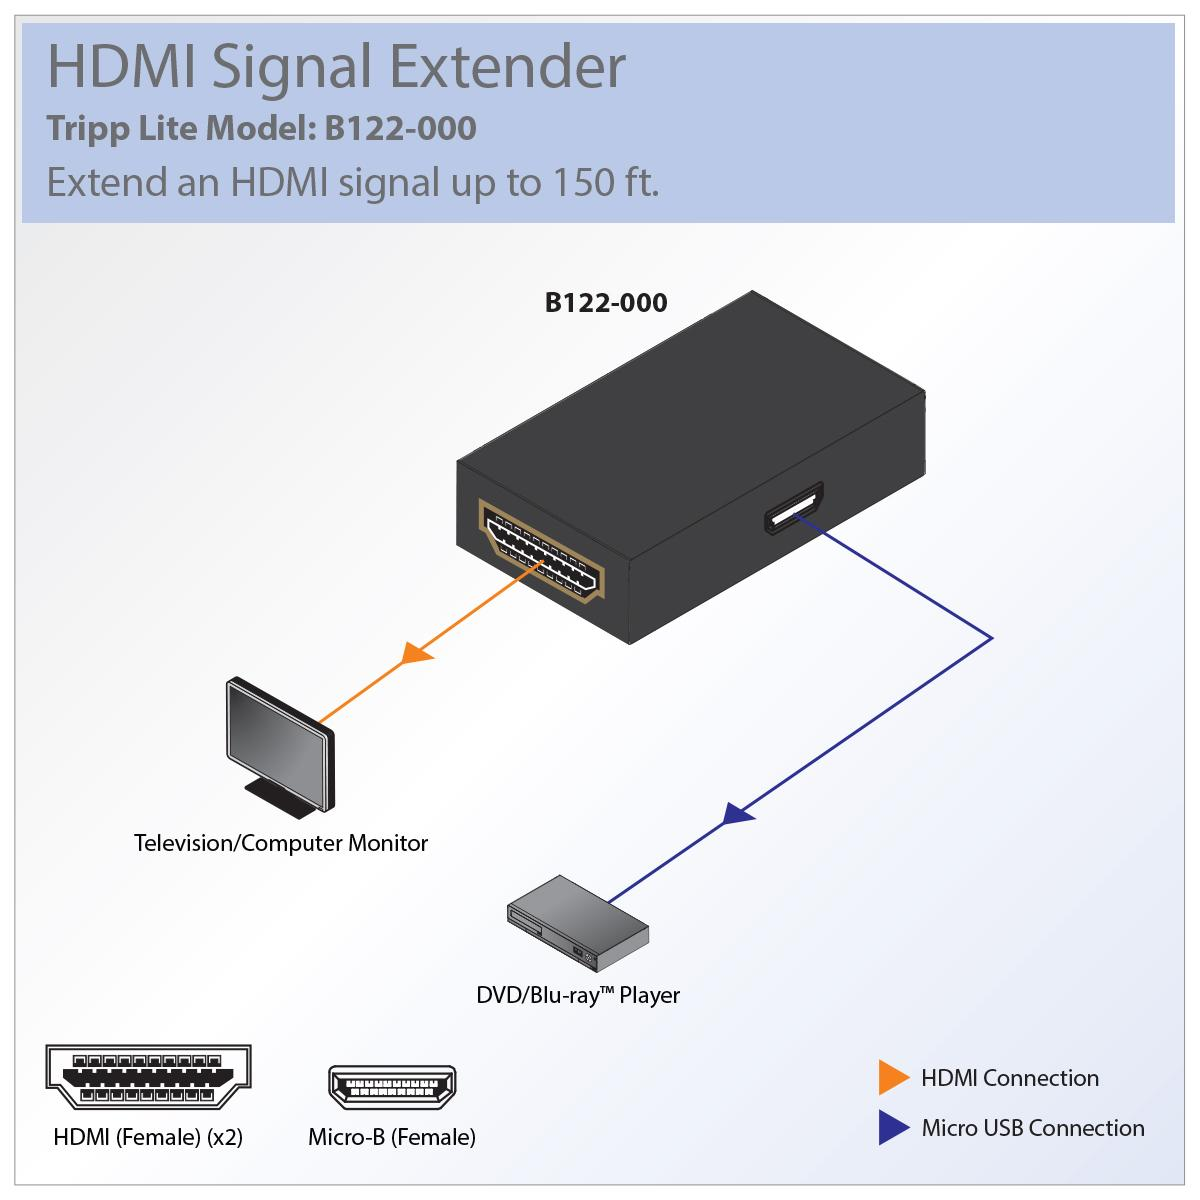 hdmi over cat5e wiring diagram voice t1 connection diagram